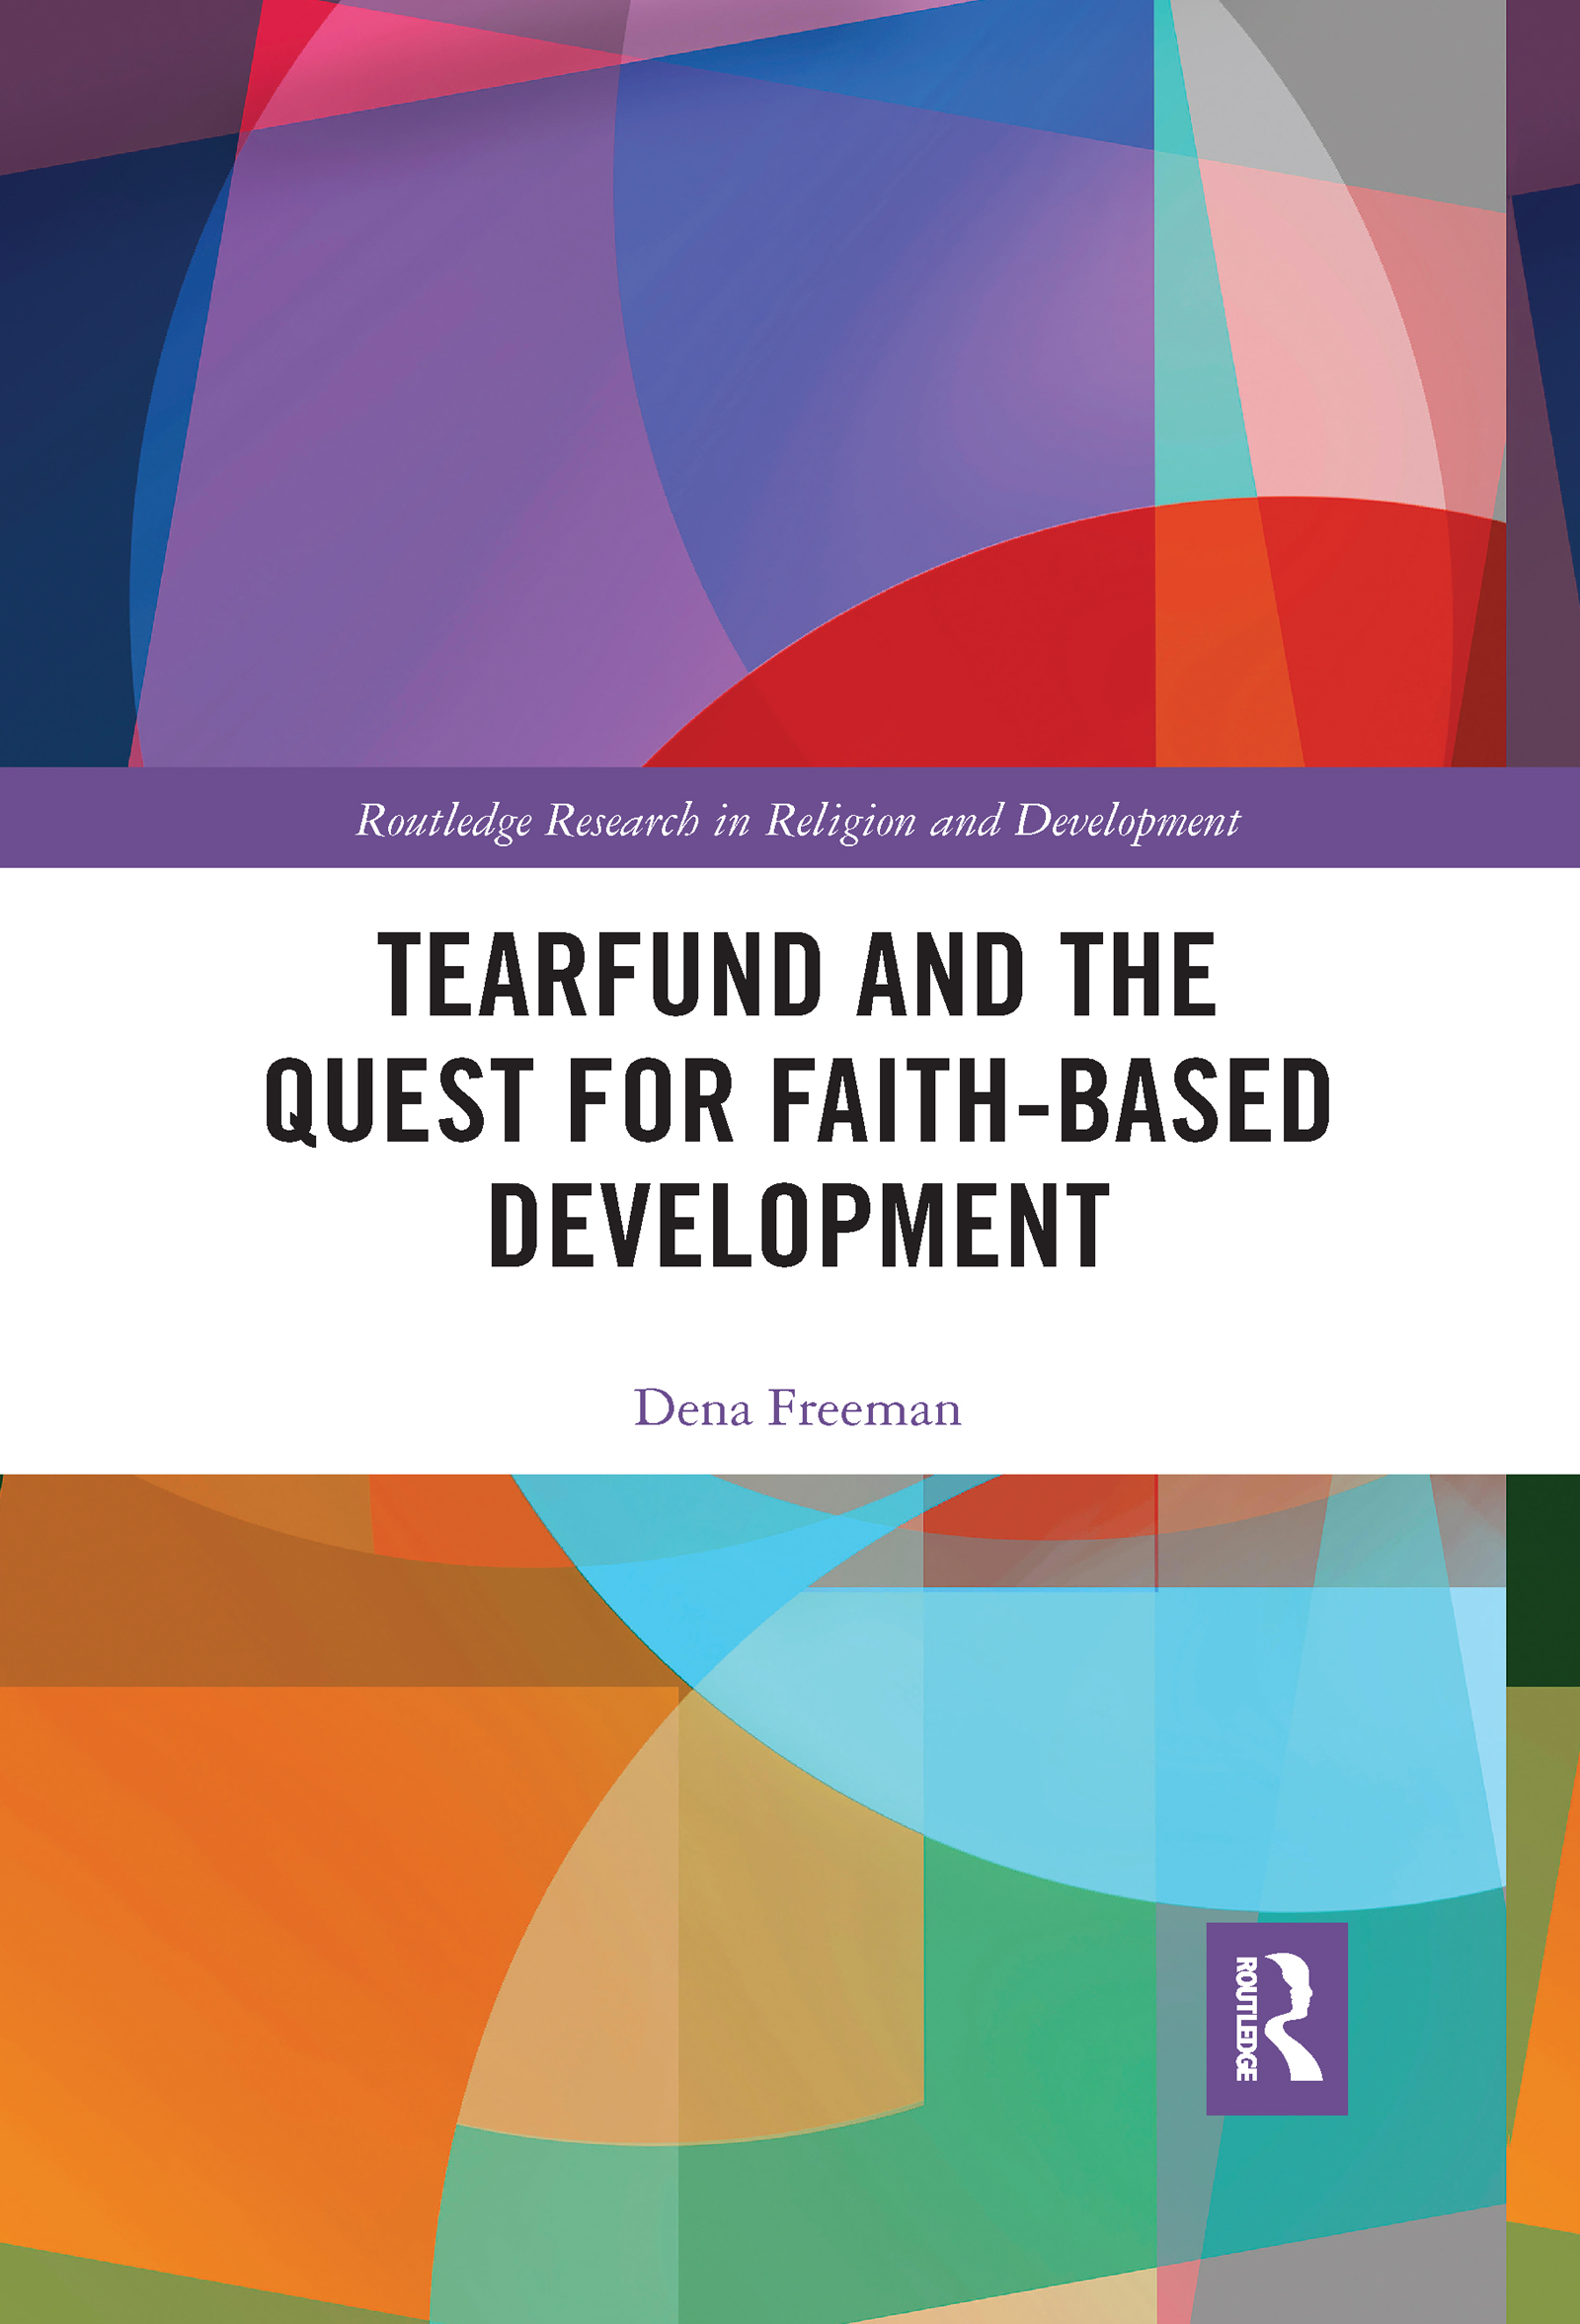 Tearfund and the Quest for Faith-Based Development